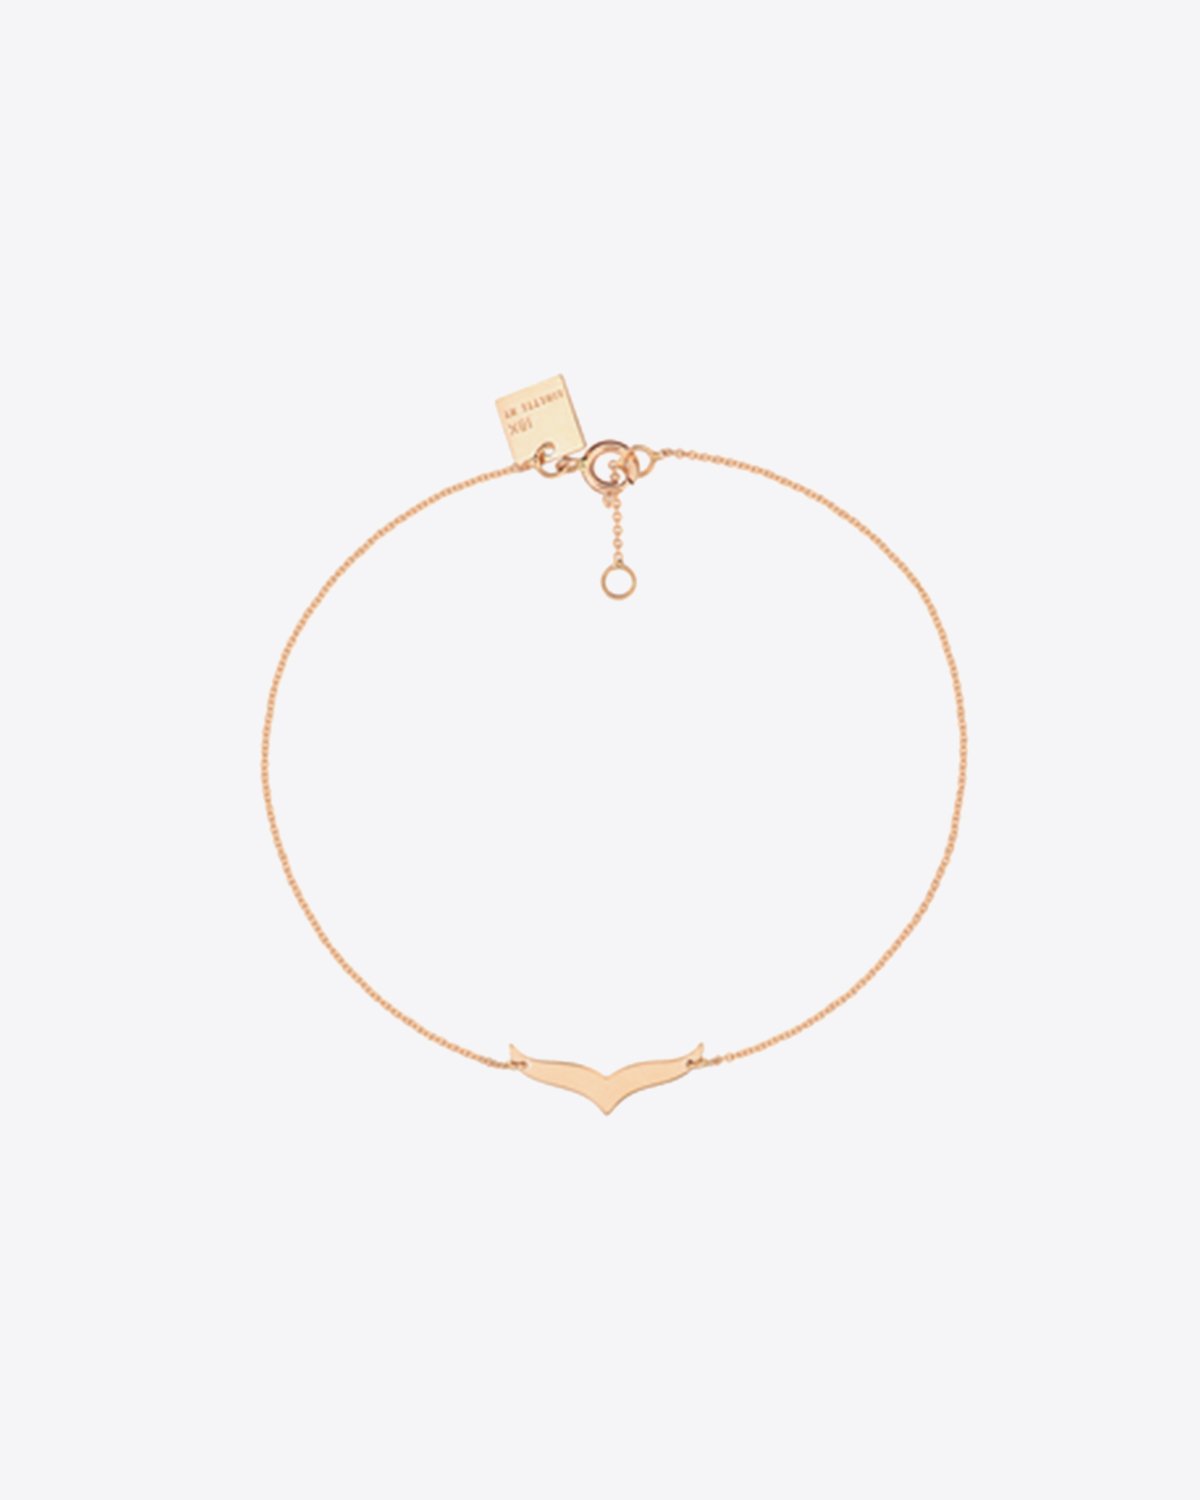 Ginette NY Wise Bracelet - Or Rose 18K